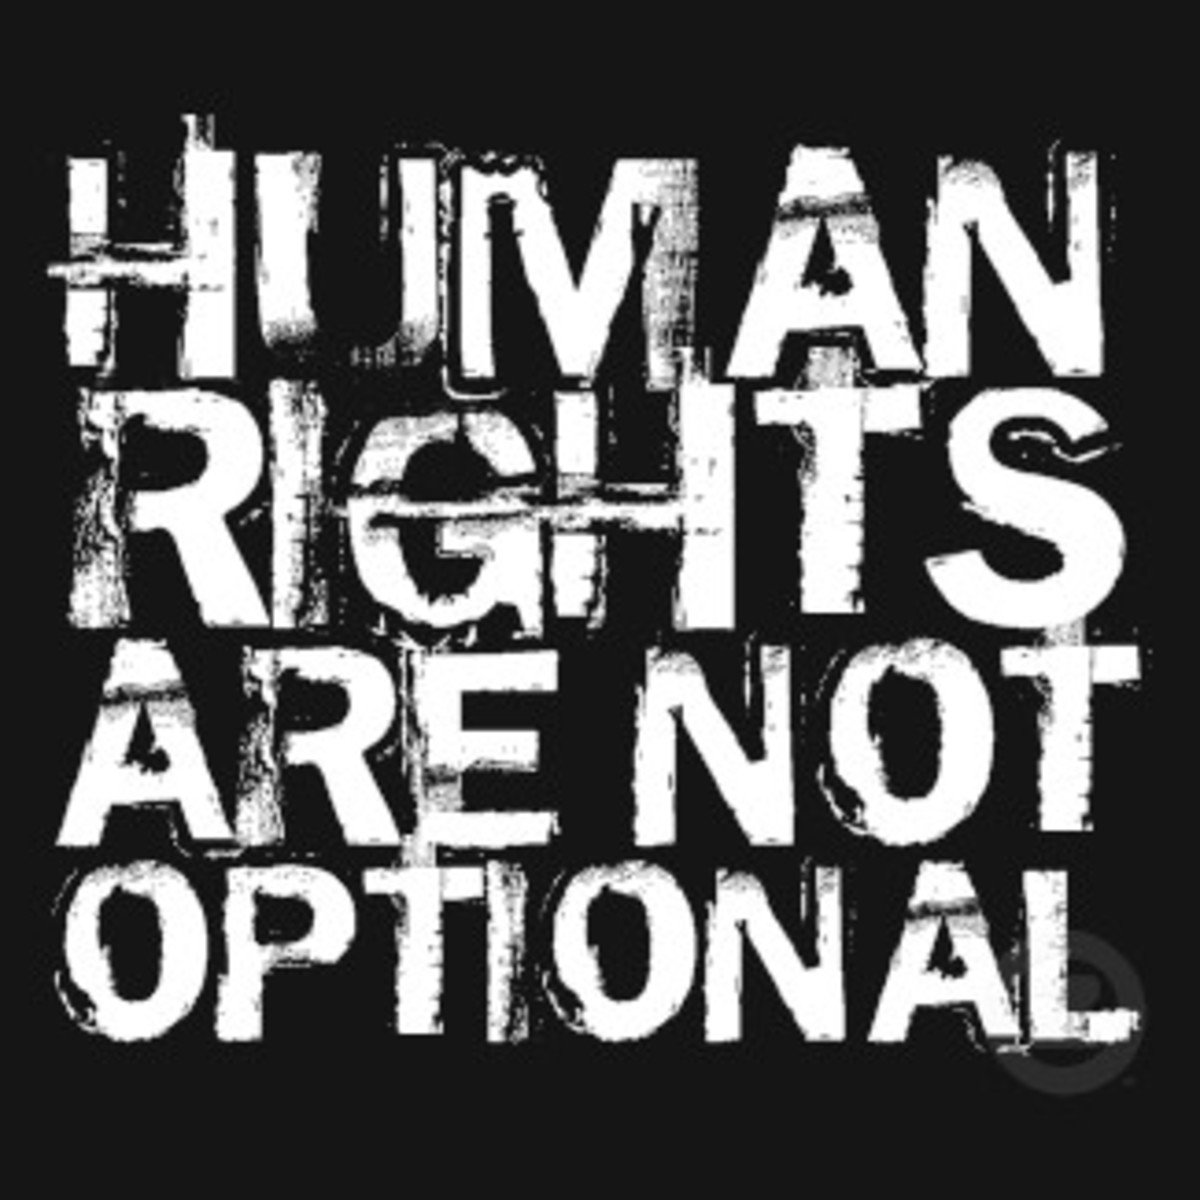 Equality You cannot be discriminated against. But affirmative action and fair discrimination are allowed. Human Dignity Your dignity must be respected and protected. Life You have the right to life. Freedom and Security of the Person You cannot be de